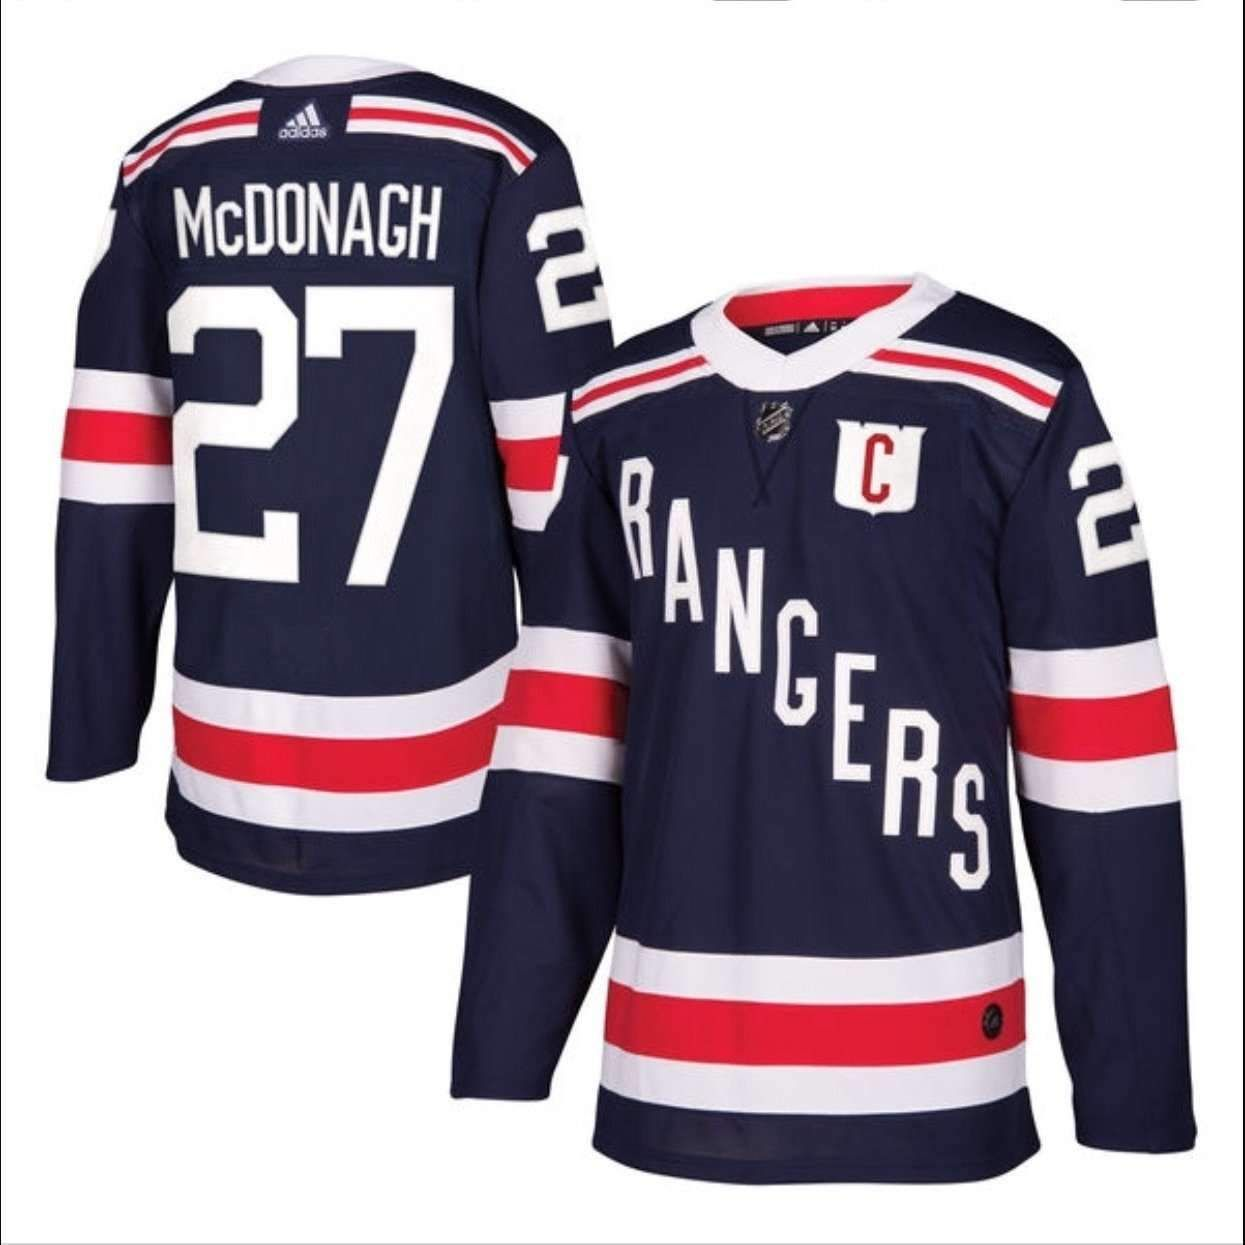 Shop and Save more than 50% at The Jersey Barn! New High Quality Henrik  Lundqvist  30 New York Rangers 2018 Winter Classic Premier Adidas Pro NHL  Jerseys. 05476d9ee